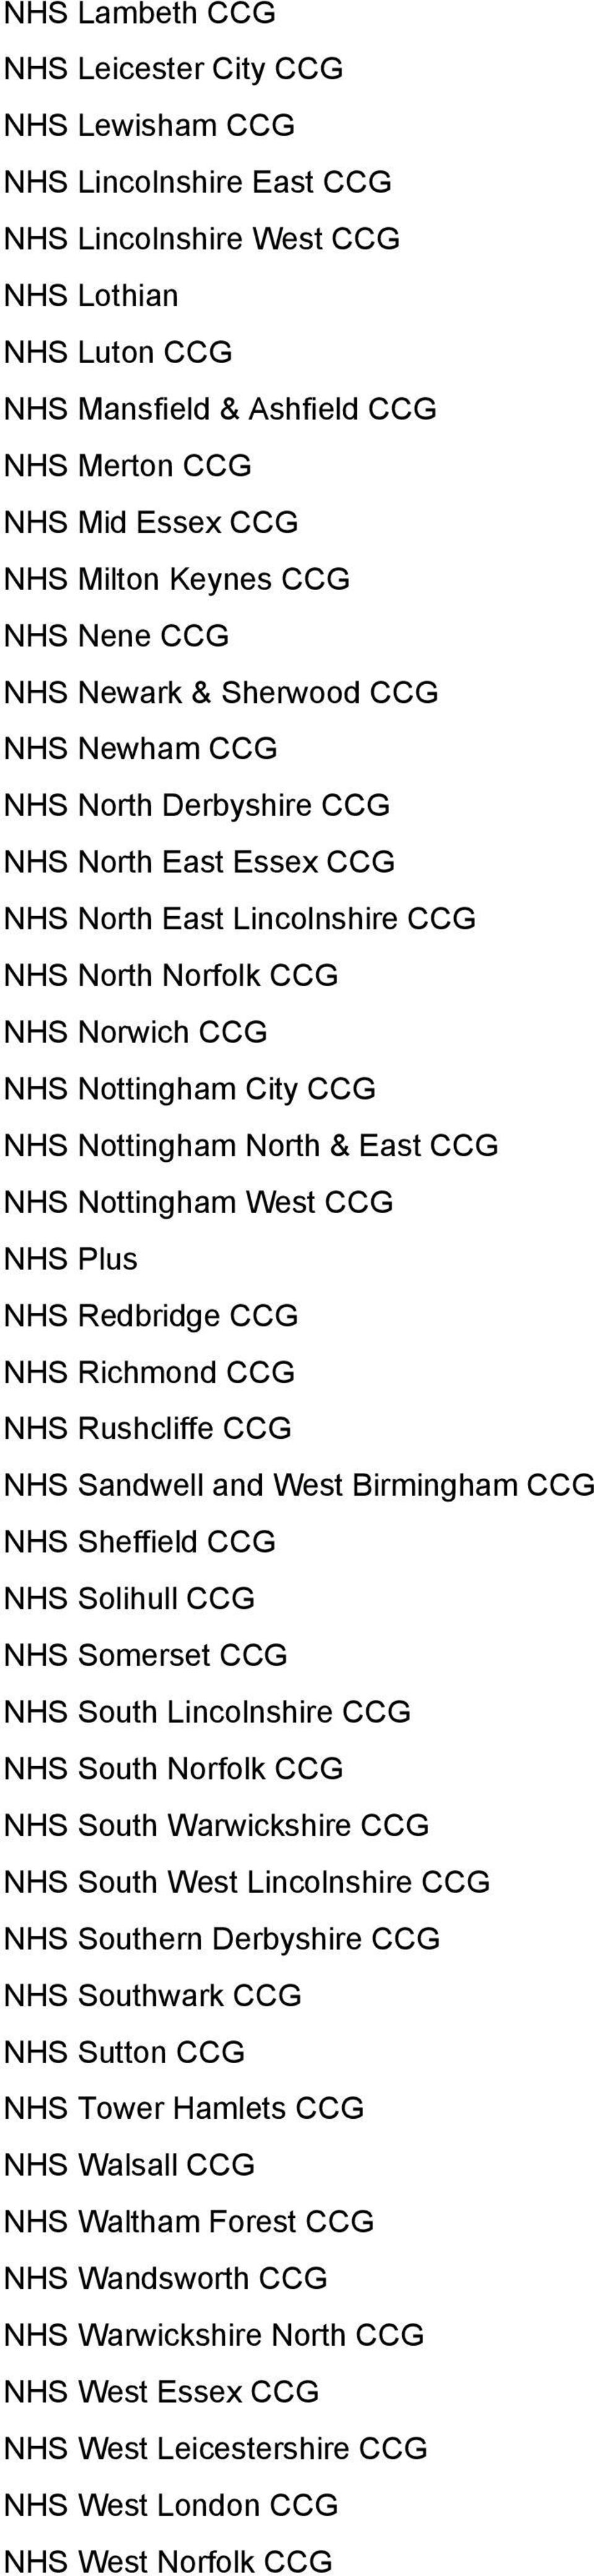 Nottingham City CCG NHS Nottingham North & East CCG NHS Nottingham West CCG NHS Plus NHS Redbridge CCG NHS Richmond CCG NHS Rushcliffe CCG NHS Sandwell and West Birmingham CCG NHS Sheffield CCG NHS